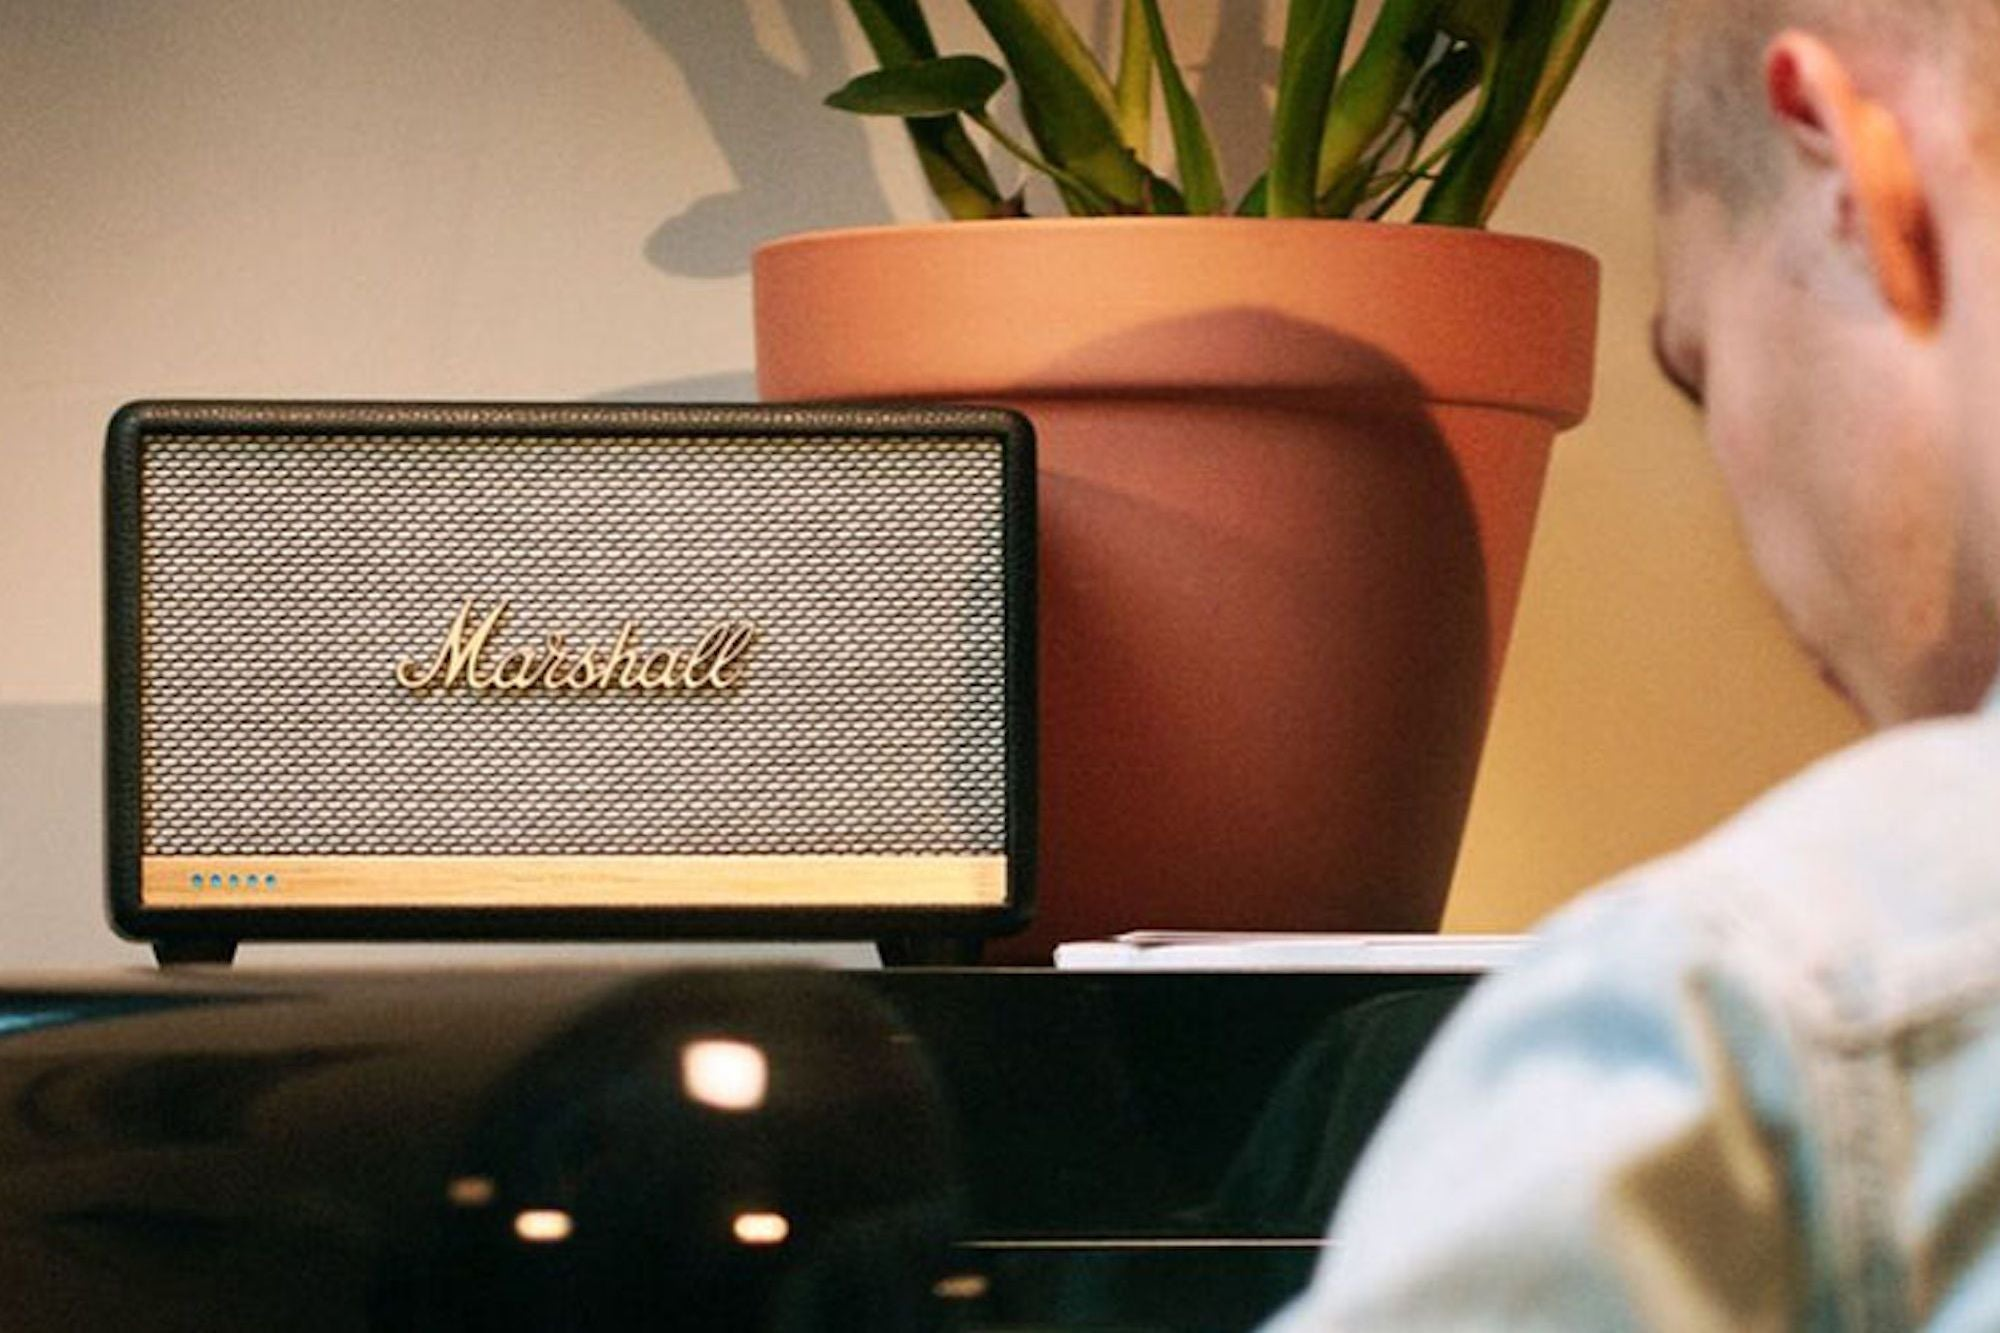 If You're Working From Home, This Marshall Wireless Smart Speaker Can Help Keep You Sane